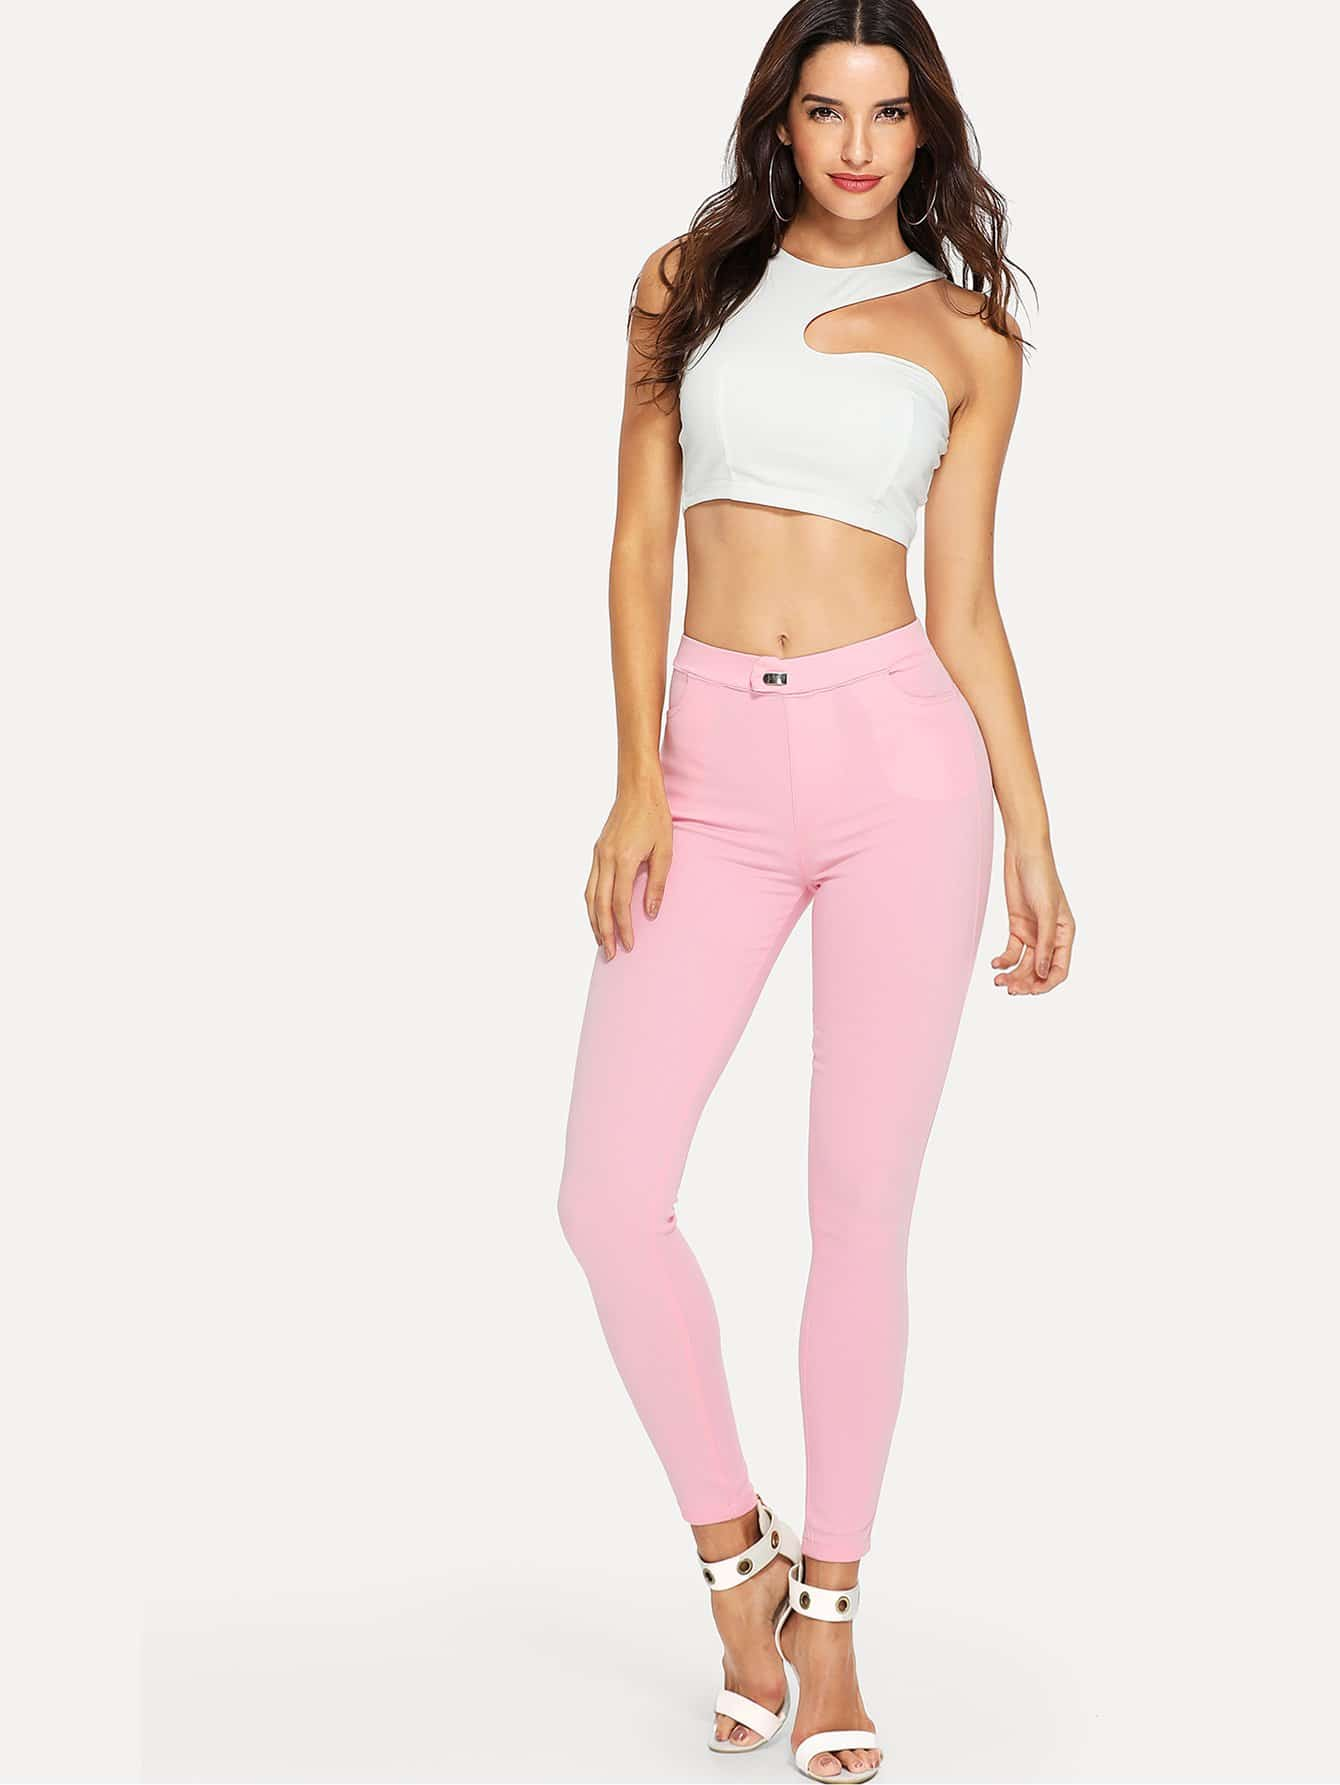 Skinny Button Jeans button design mid waist skinny jeans